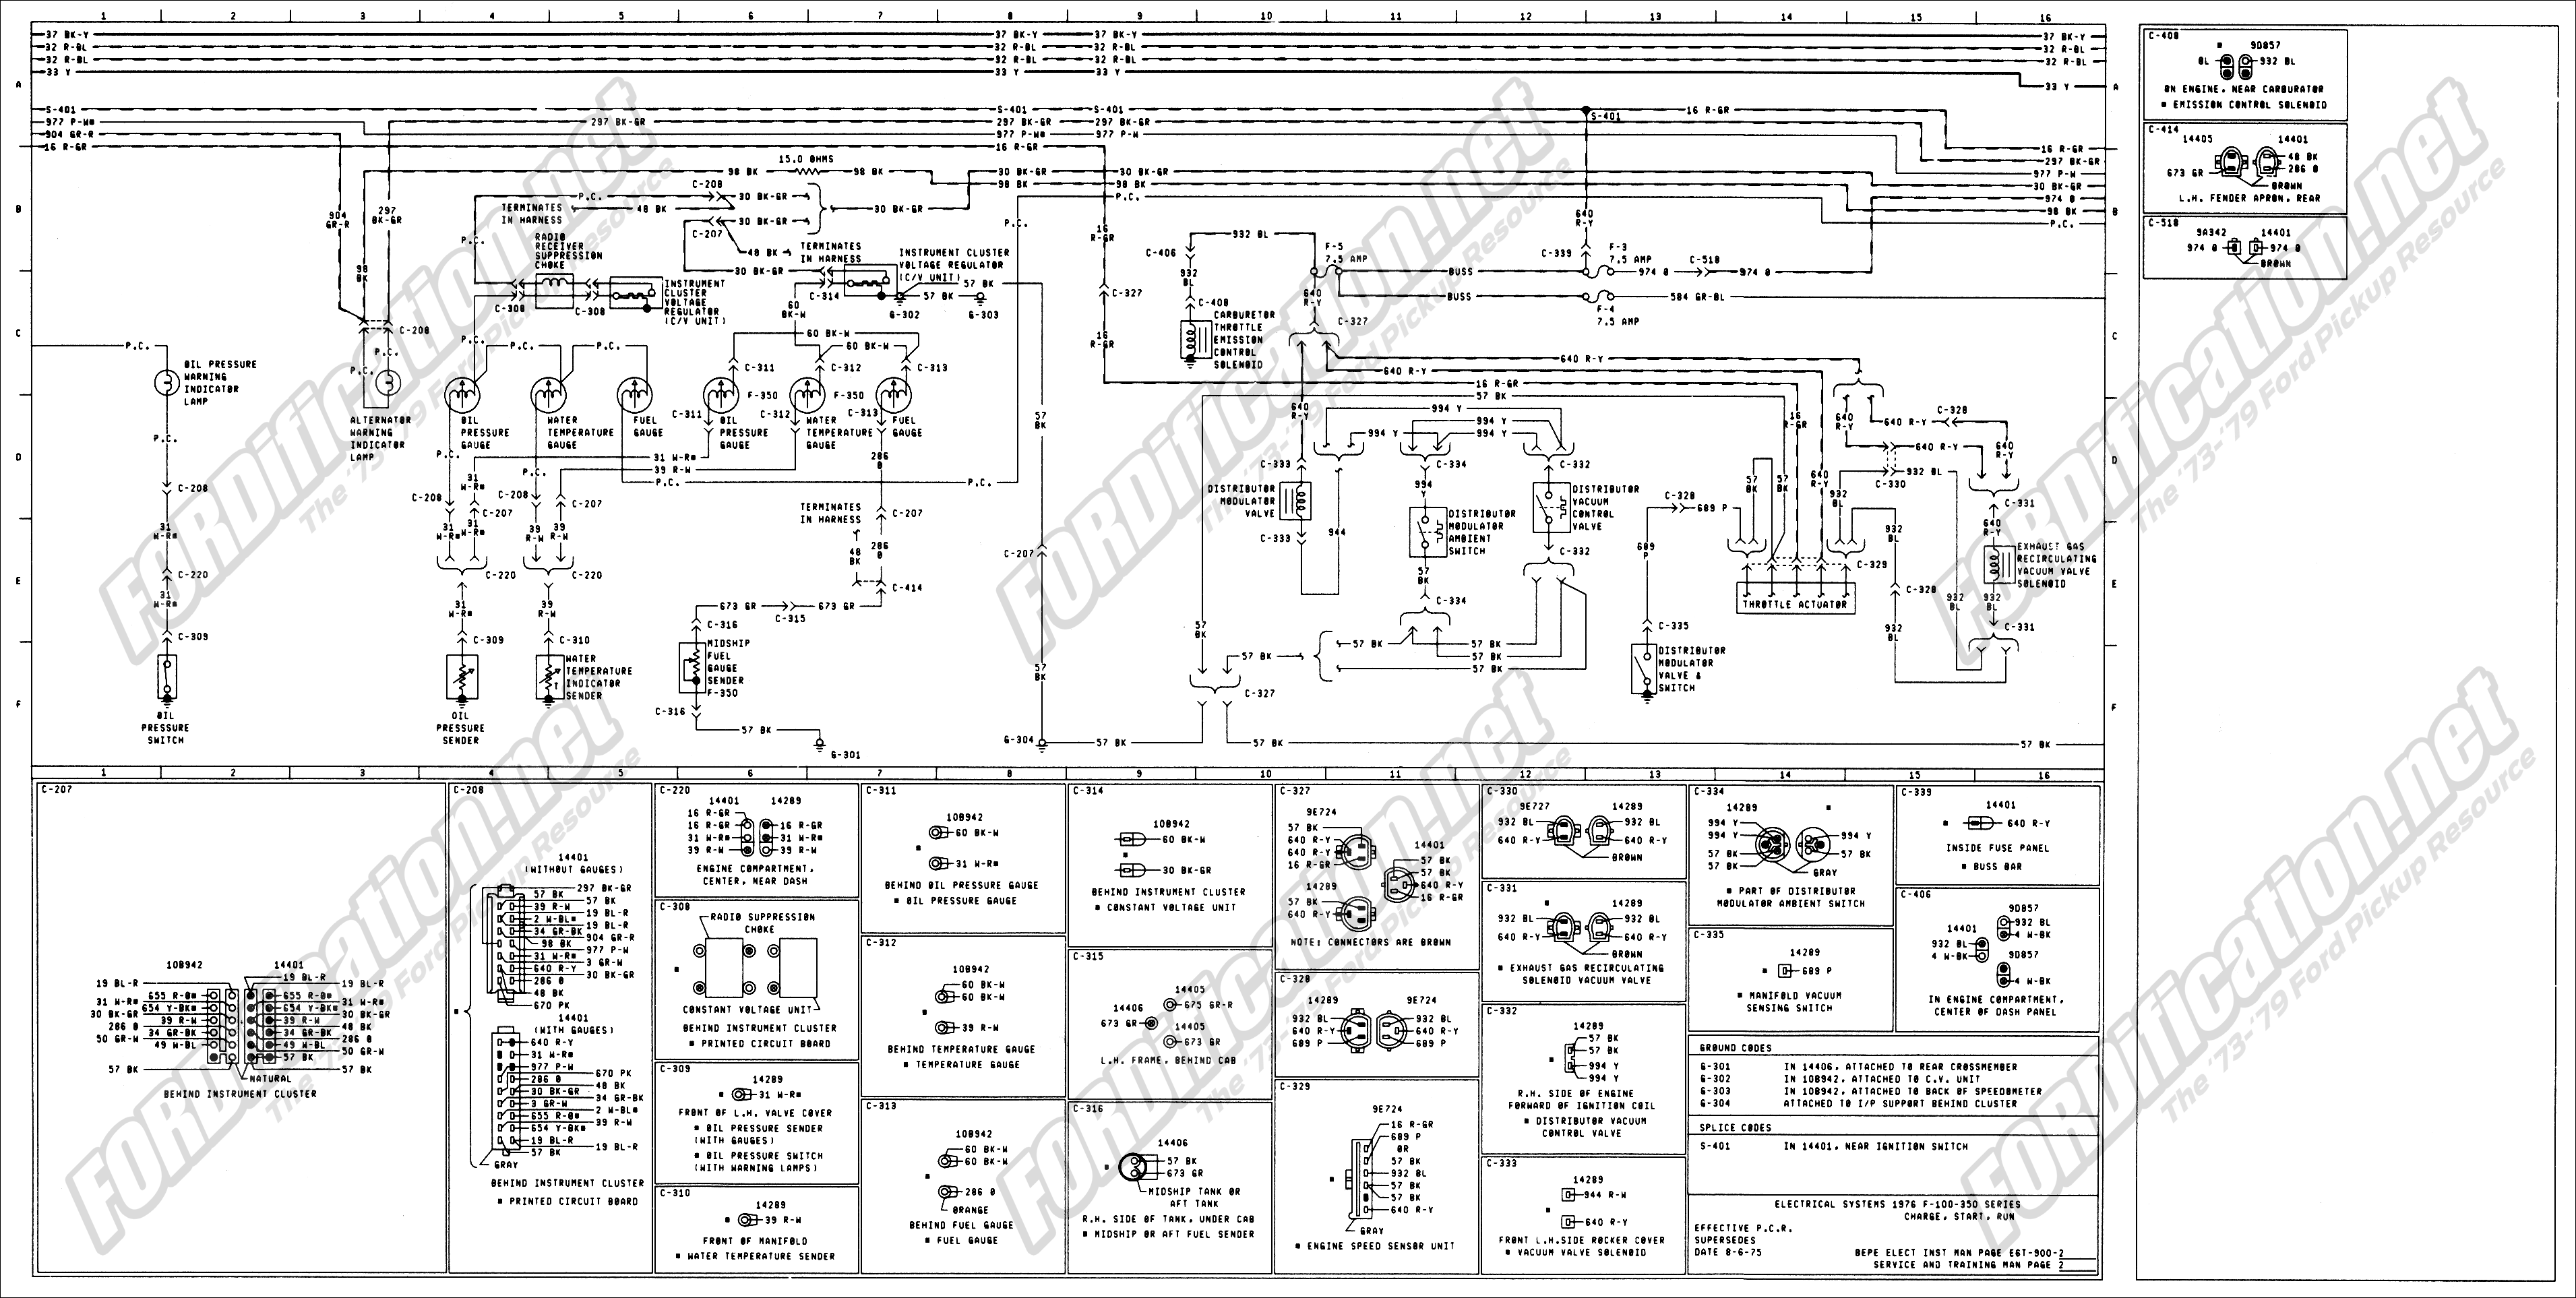 ford 460 firing order diagram 2010 expedition fuse 1977 f100 352 wiring get free image